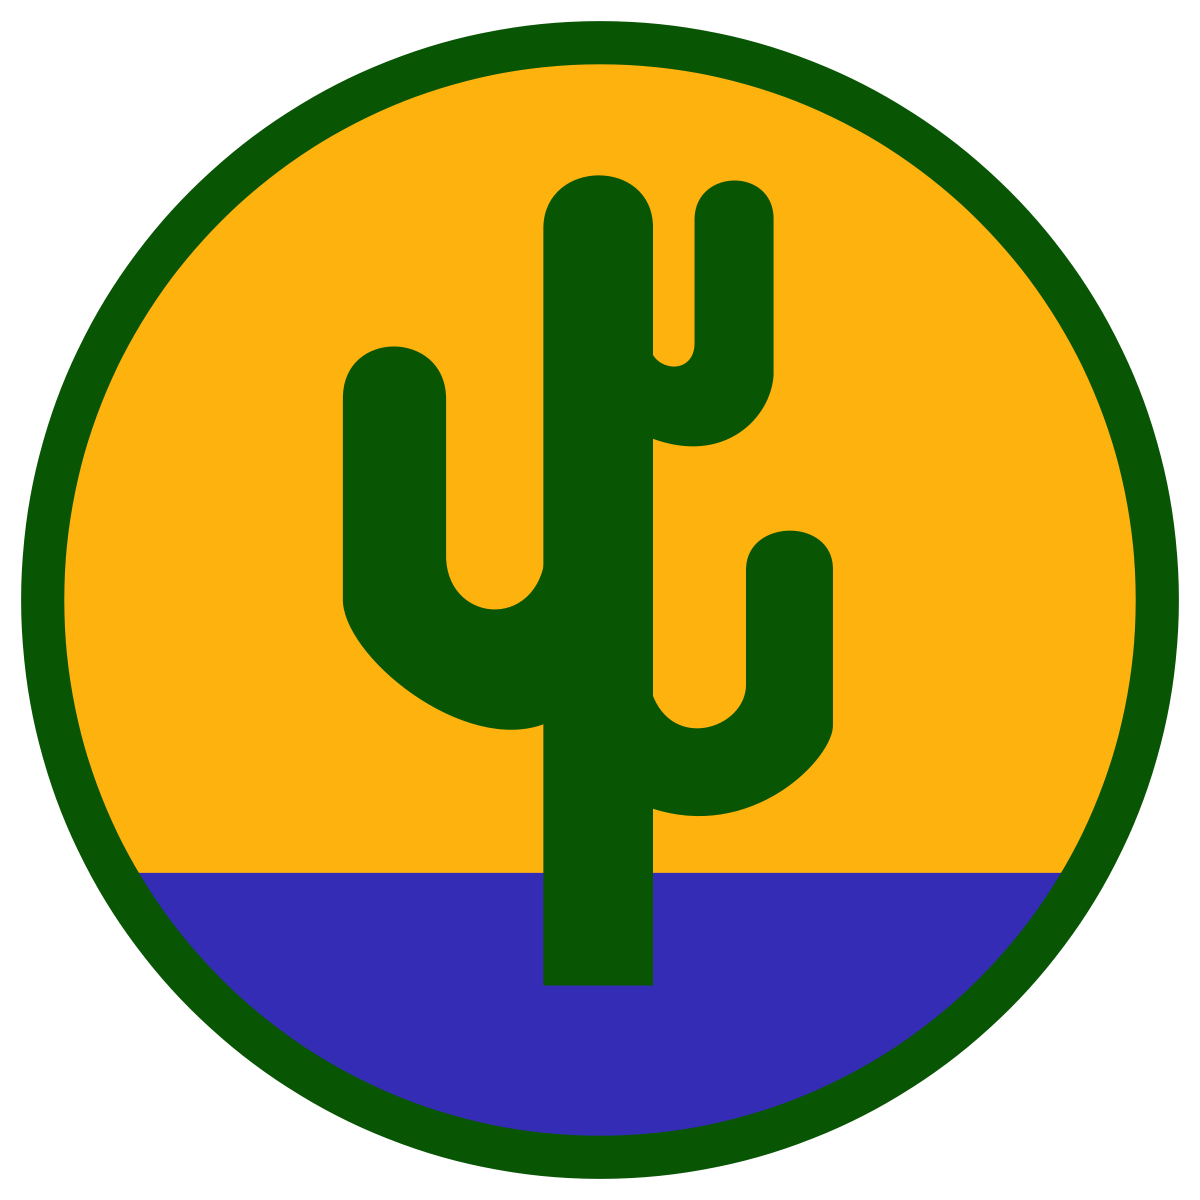 103rd Infantry Division (United States).